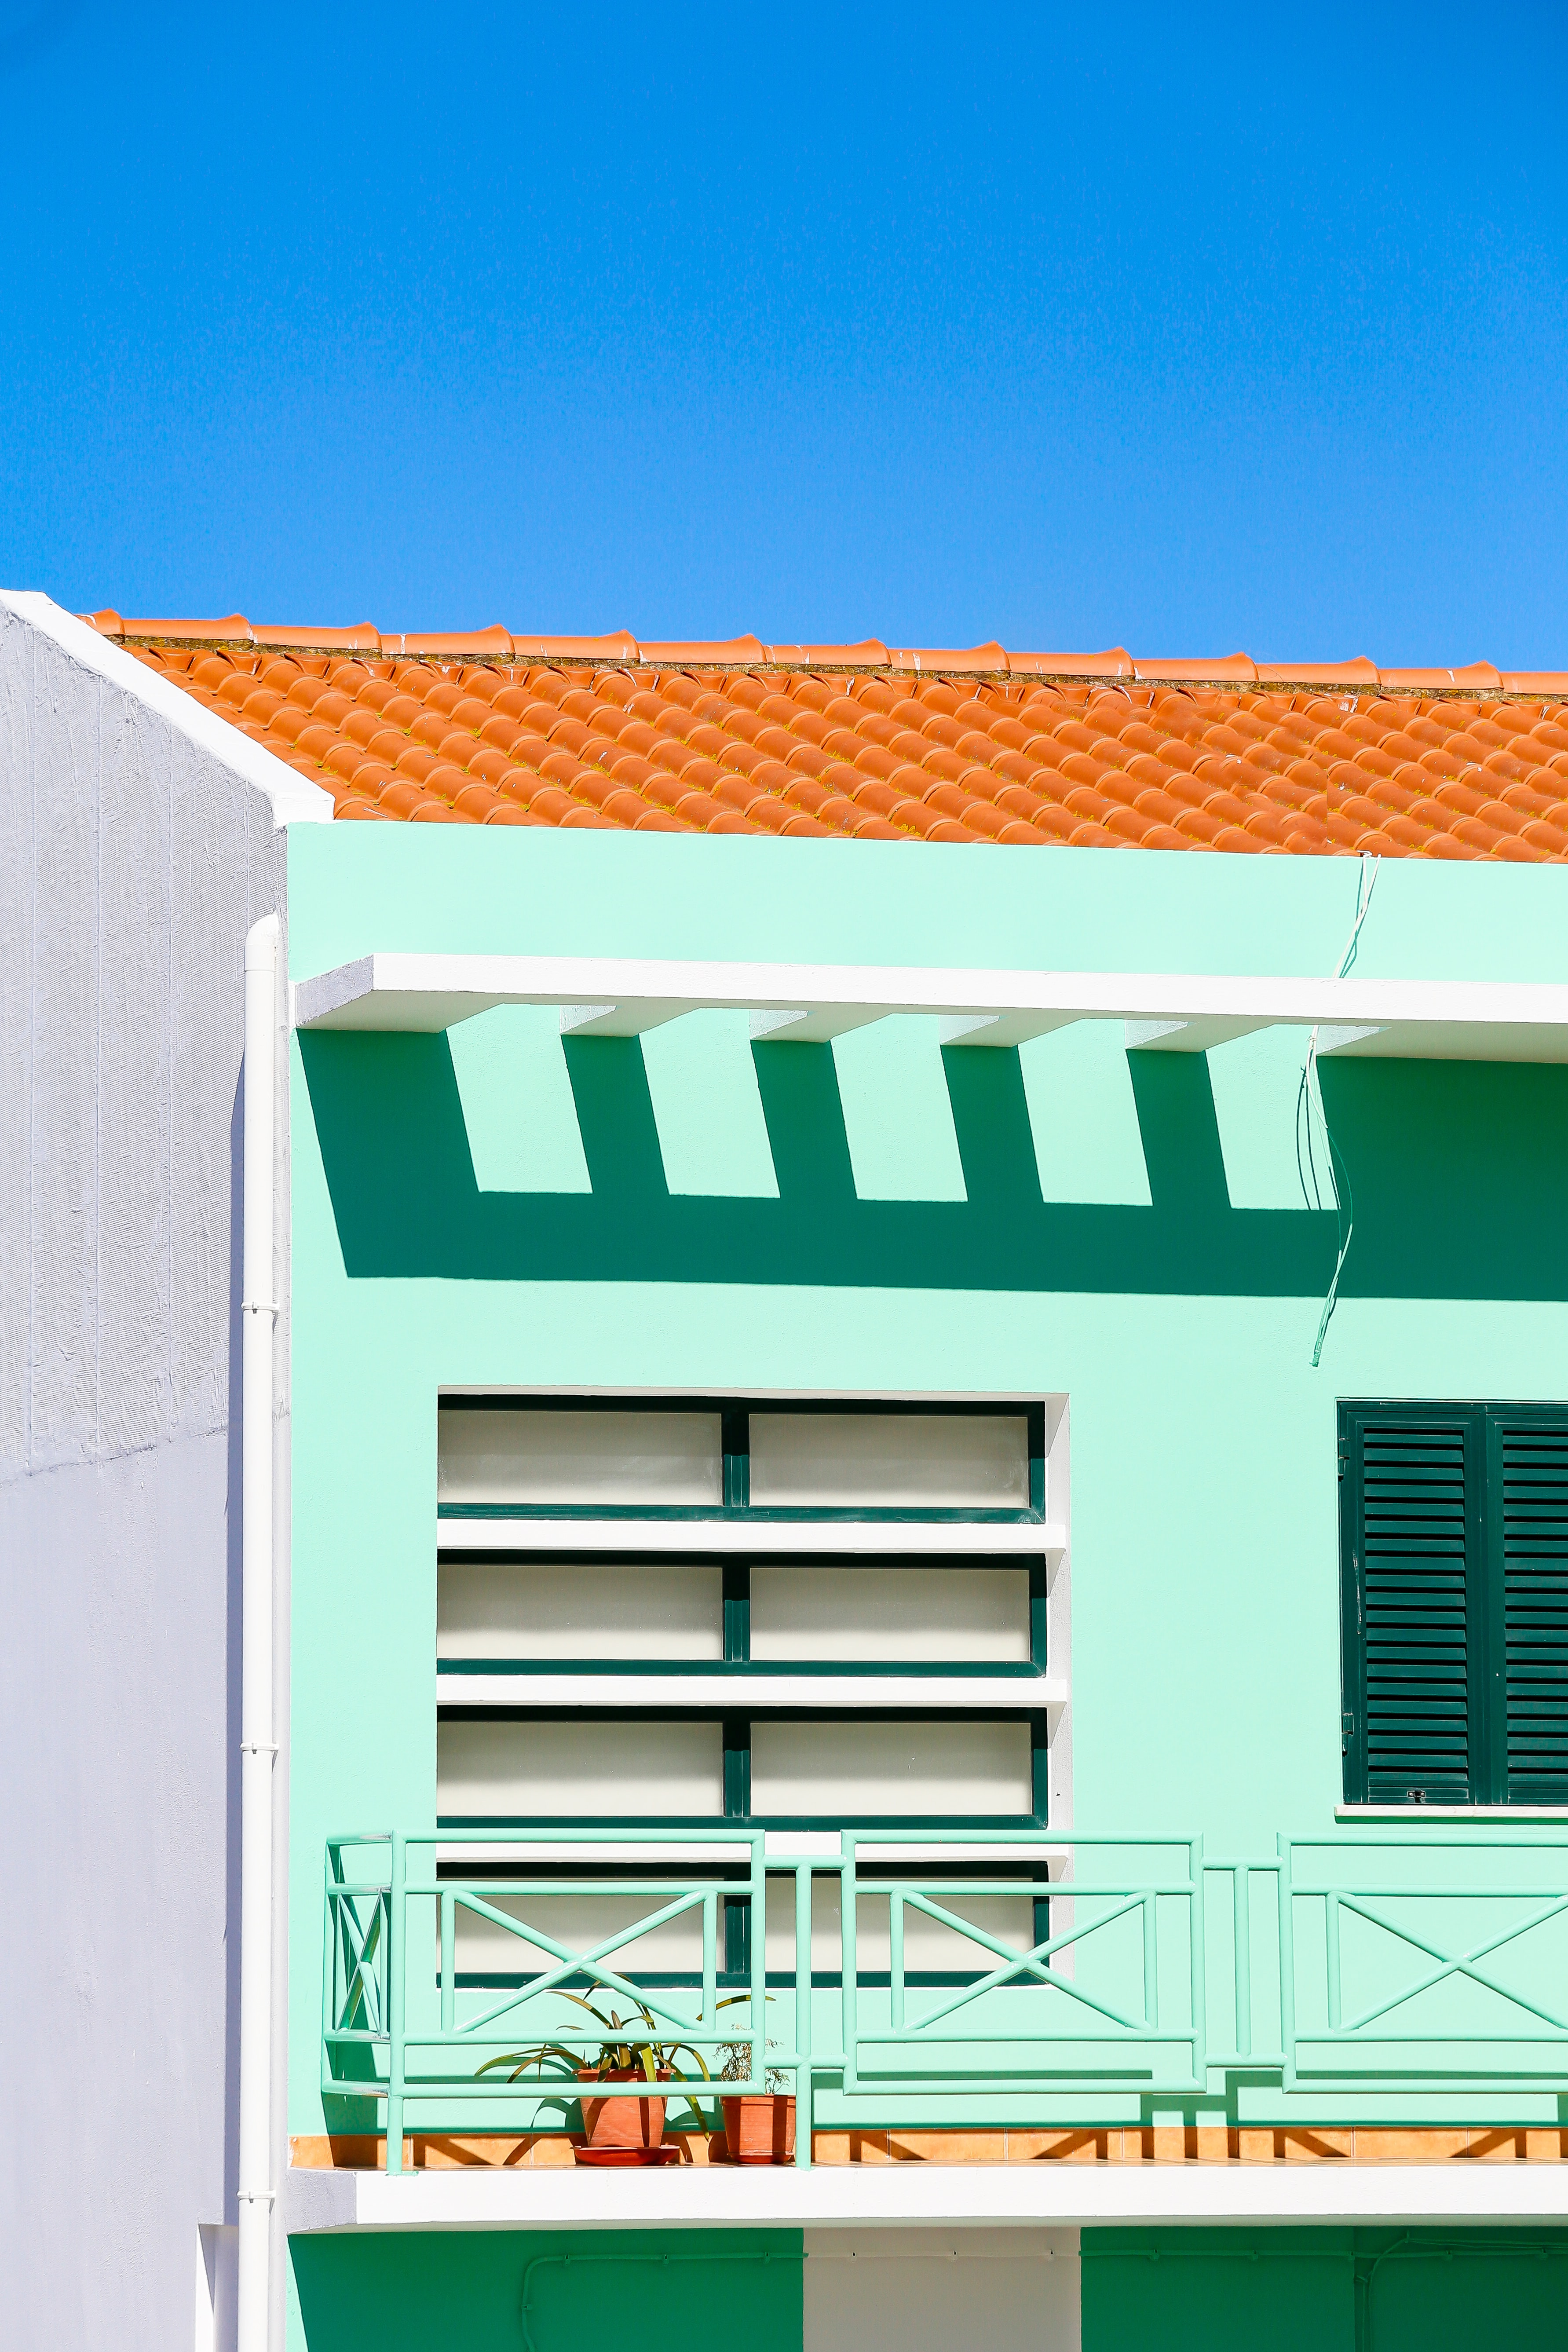 green and white concrete building under blue sky